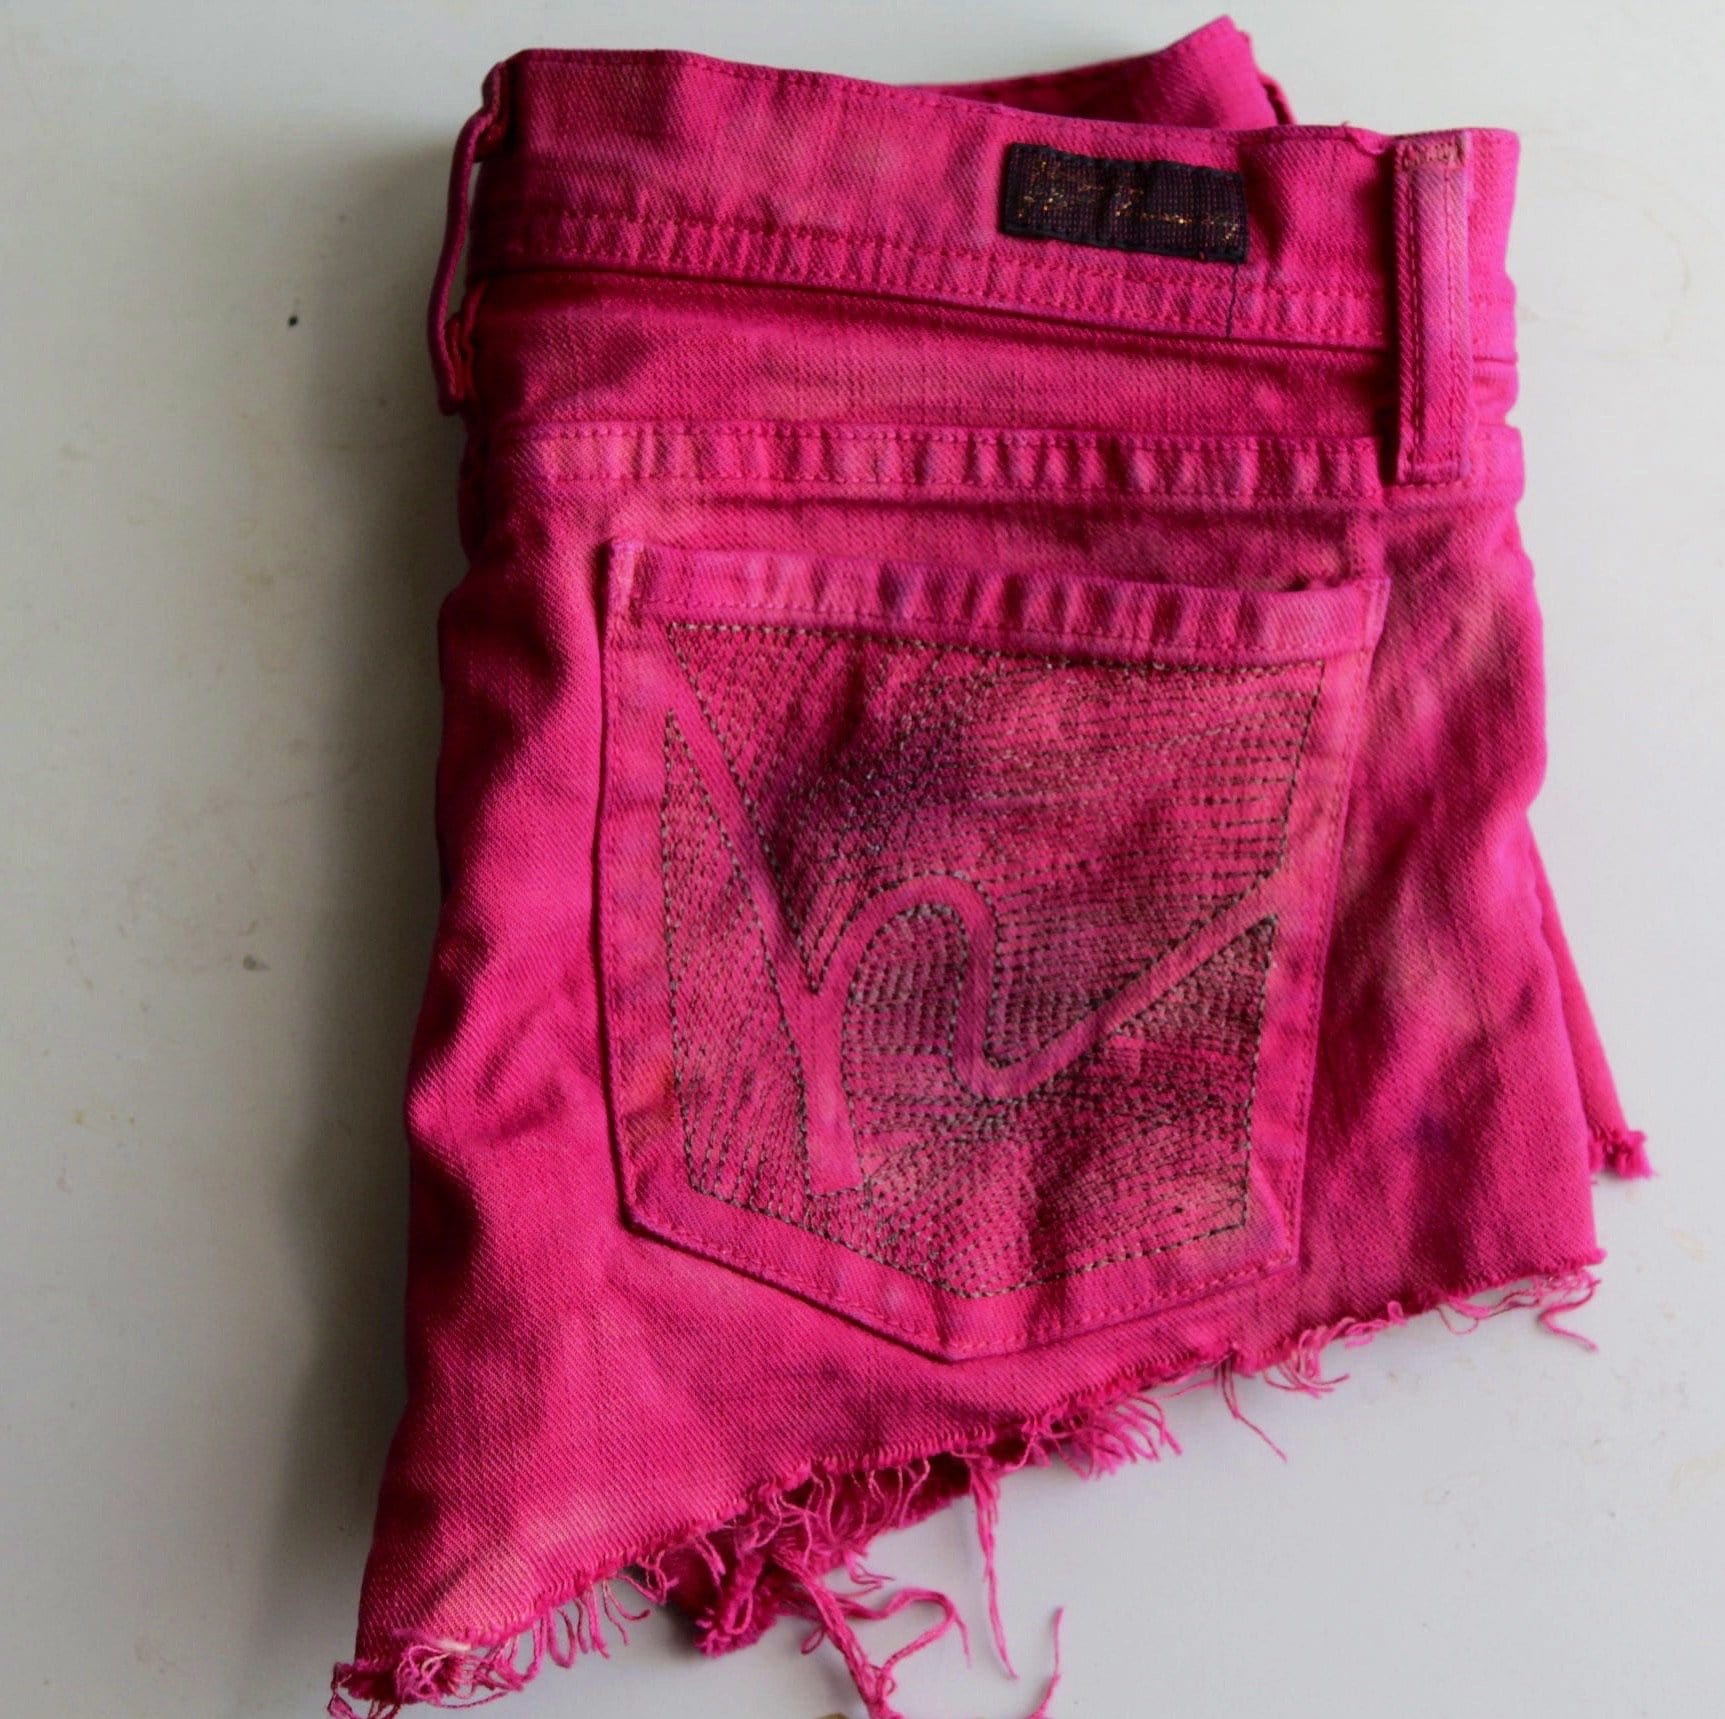 Citizens for humanity upcycled red cut-off denim shorts